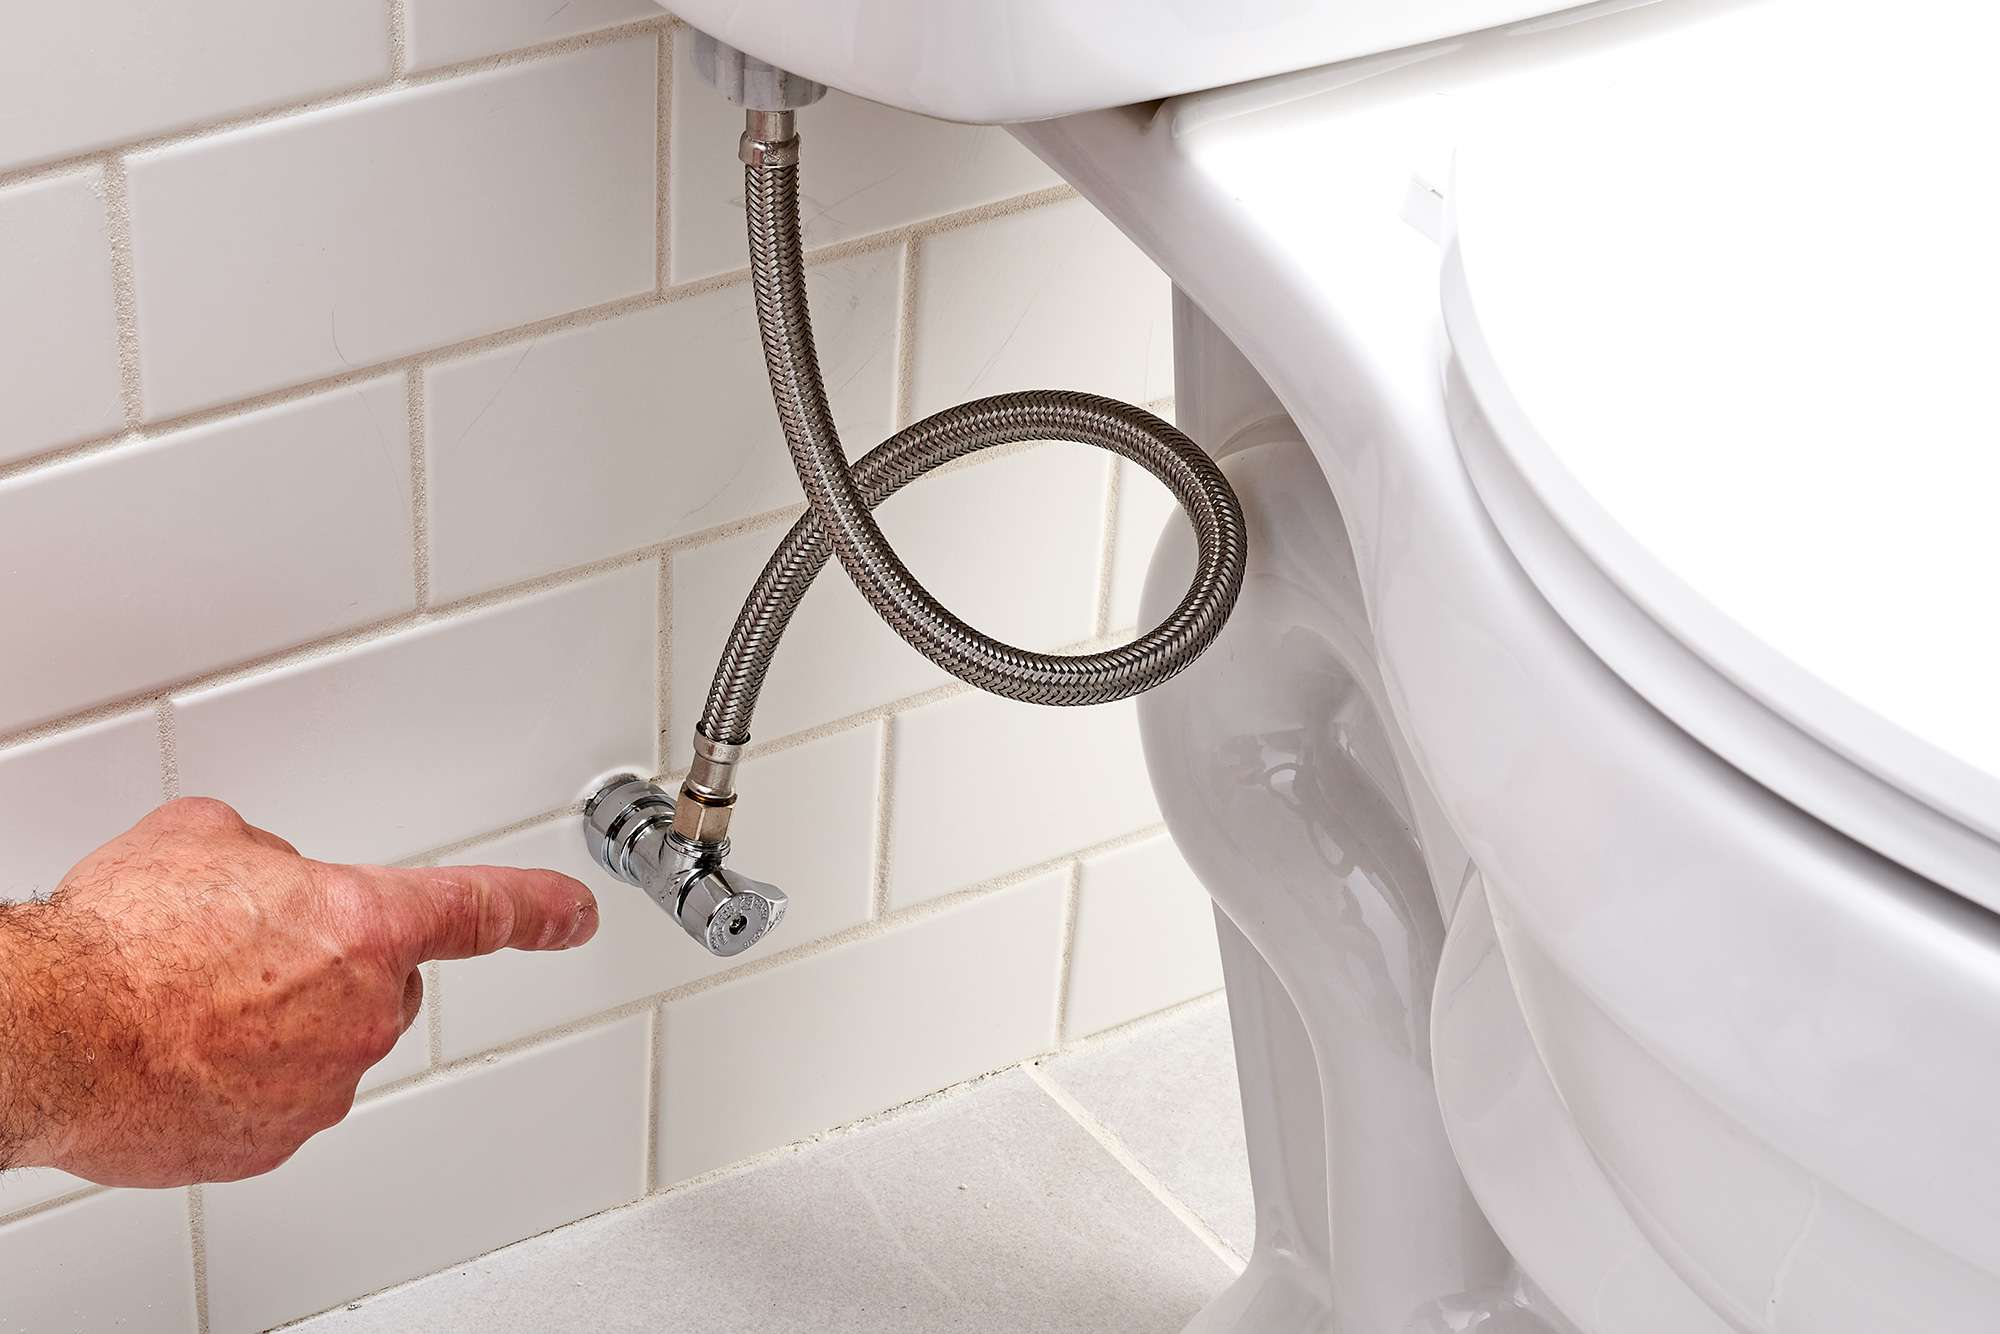 Shutoff valve pointed out underneath toilet